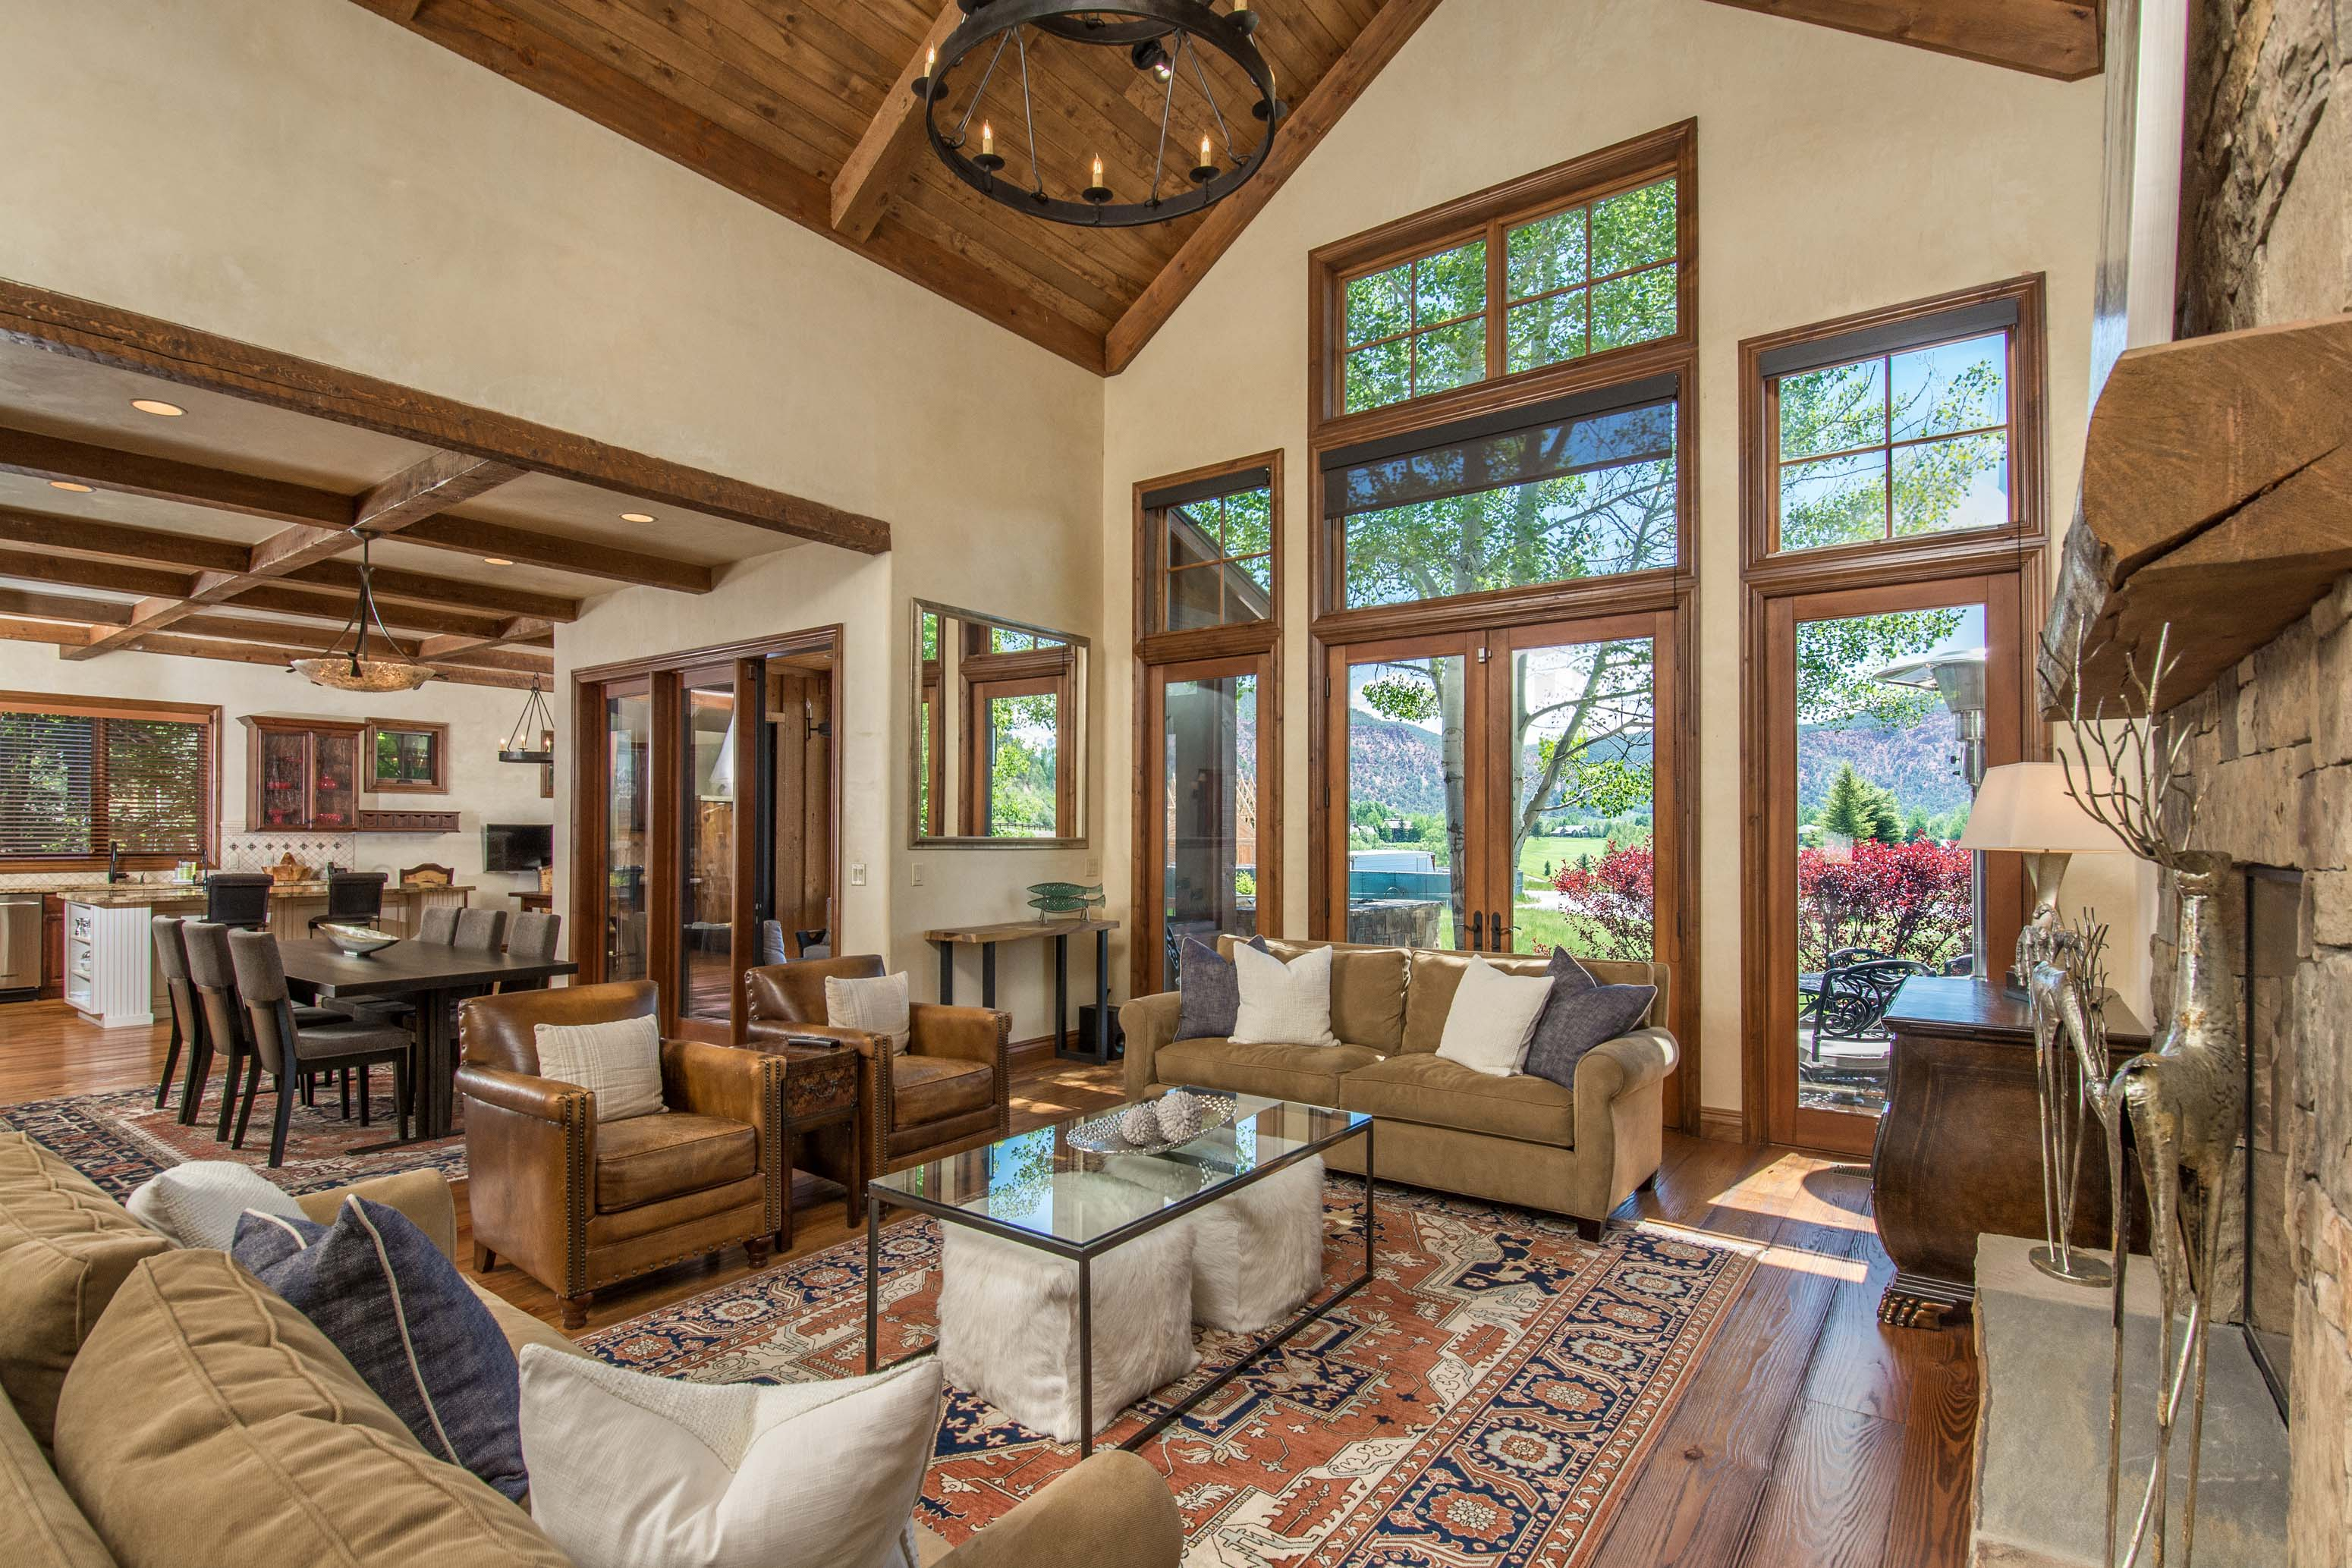 Single Family Home for sale in 5 & TBD Golden Stone Drive, Carbondale, Colorado ,81623